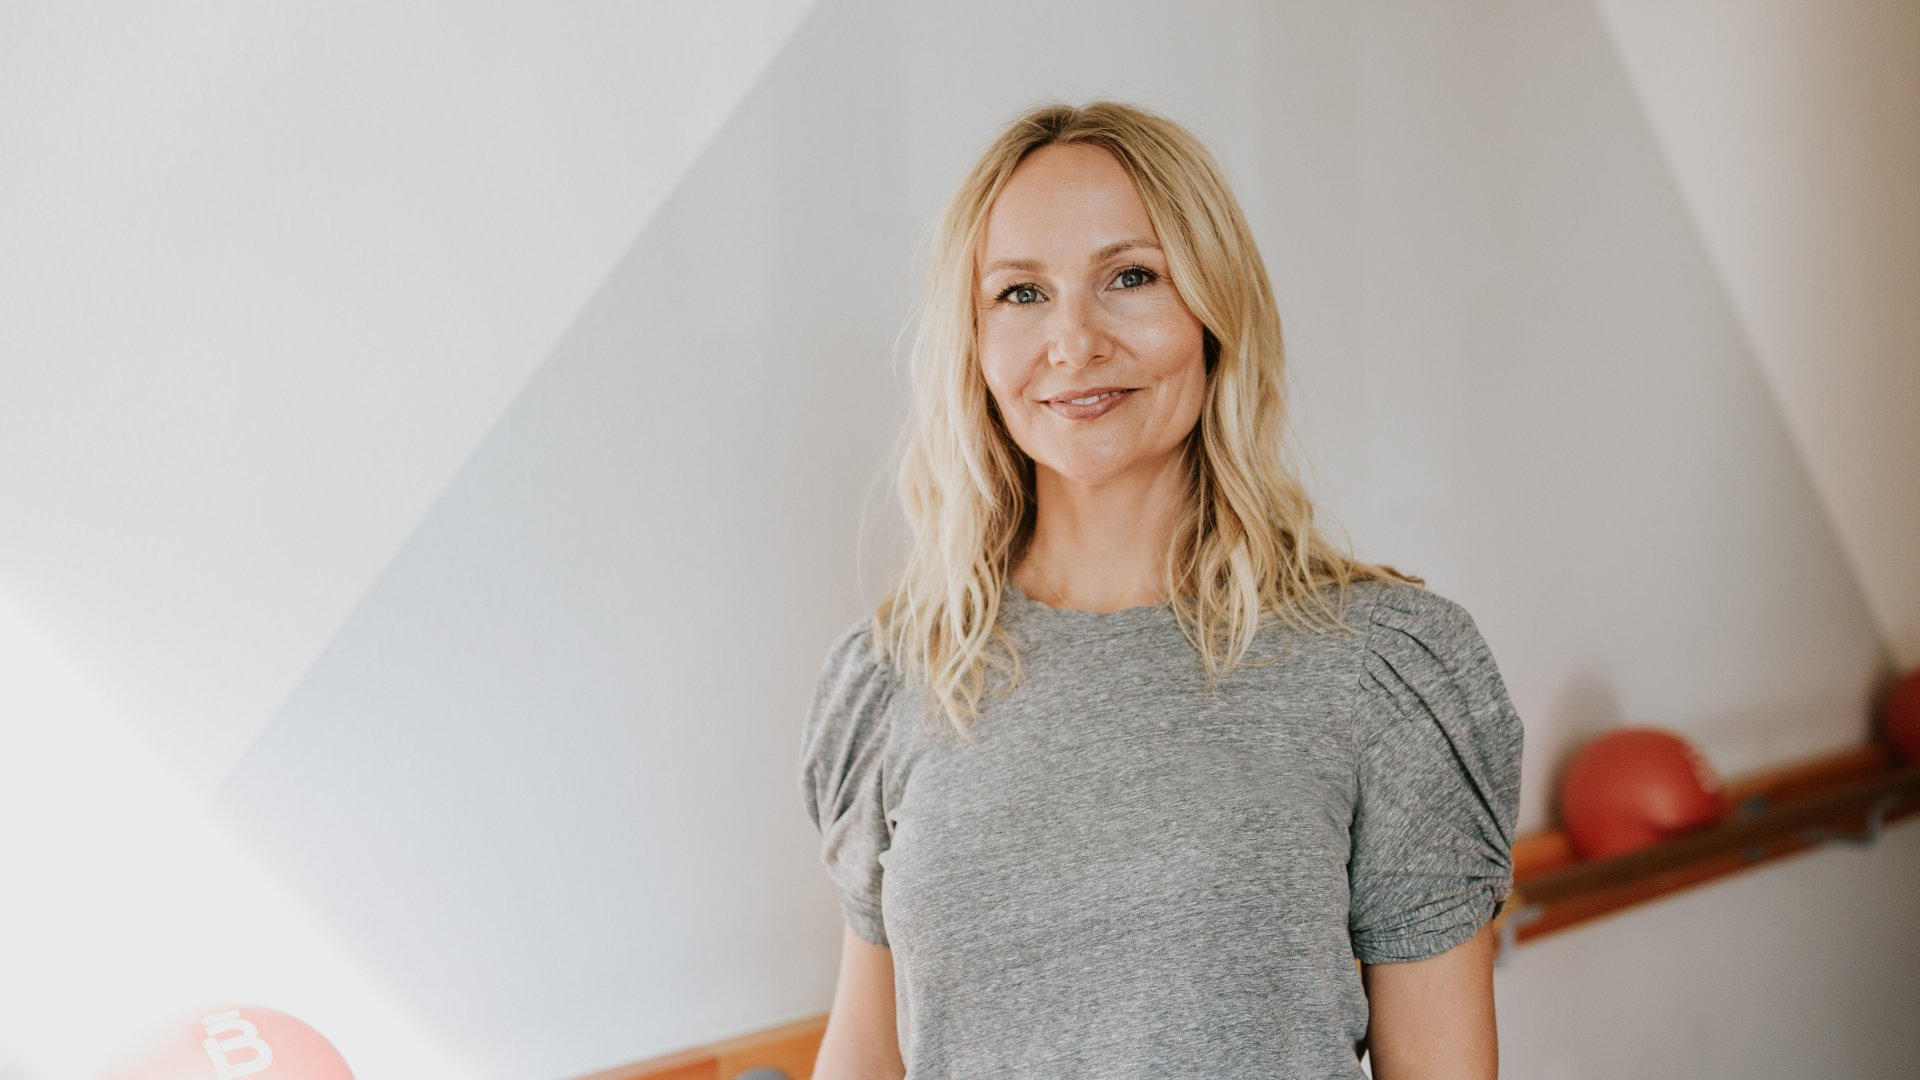 Sadie Lincoln is co-founder and CEO of barre3.